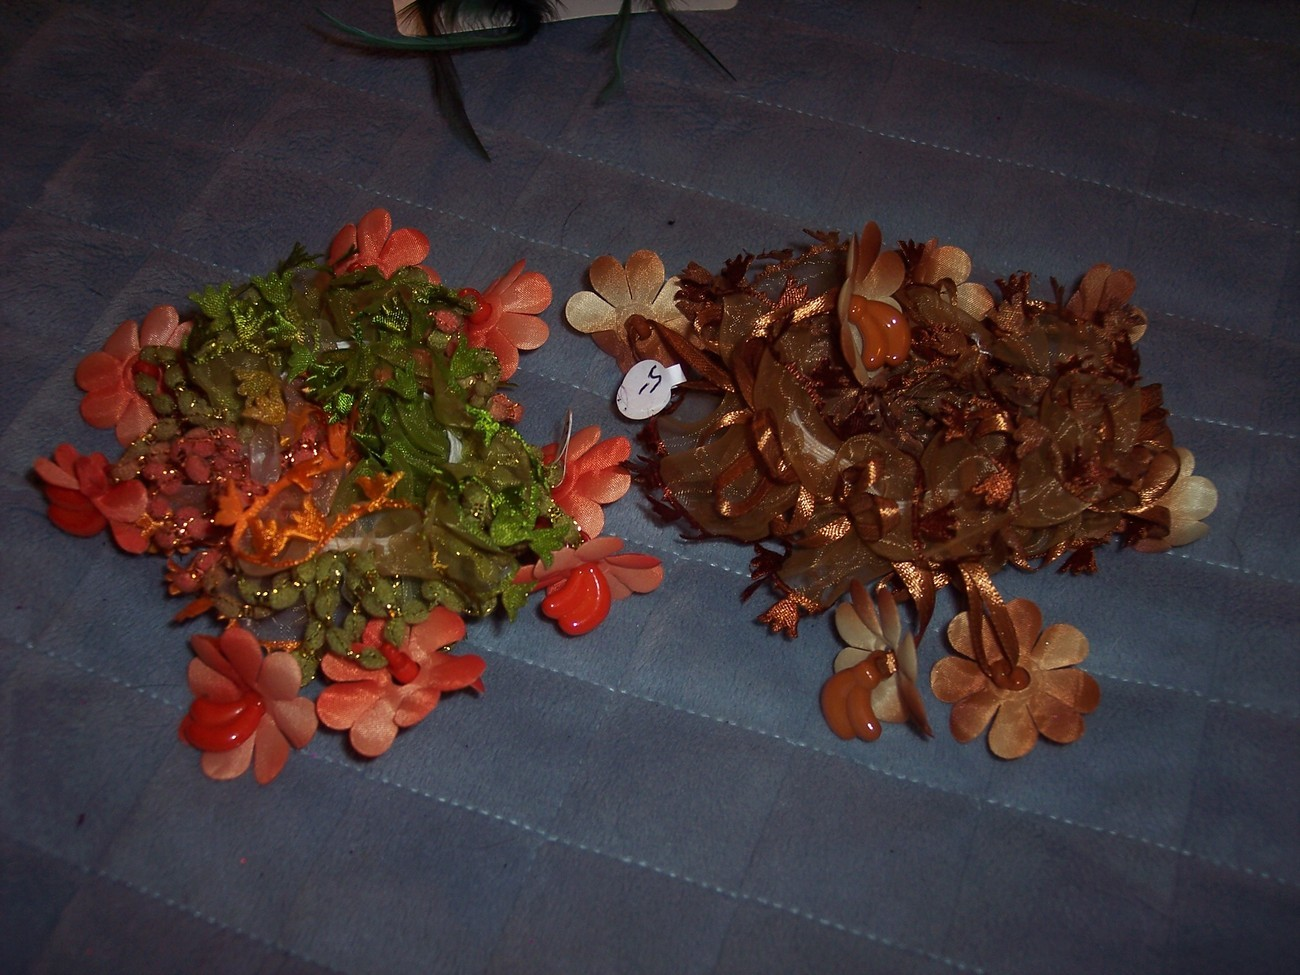 Lot of 2 Handmade Ponytail Holders/ Scrunchies Thanksgiving Theme and Colors